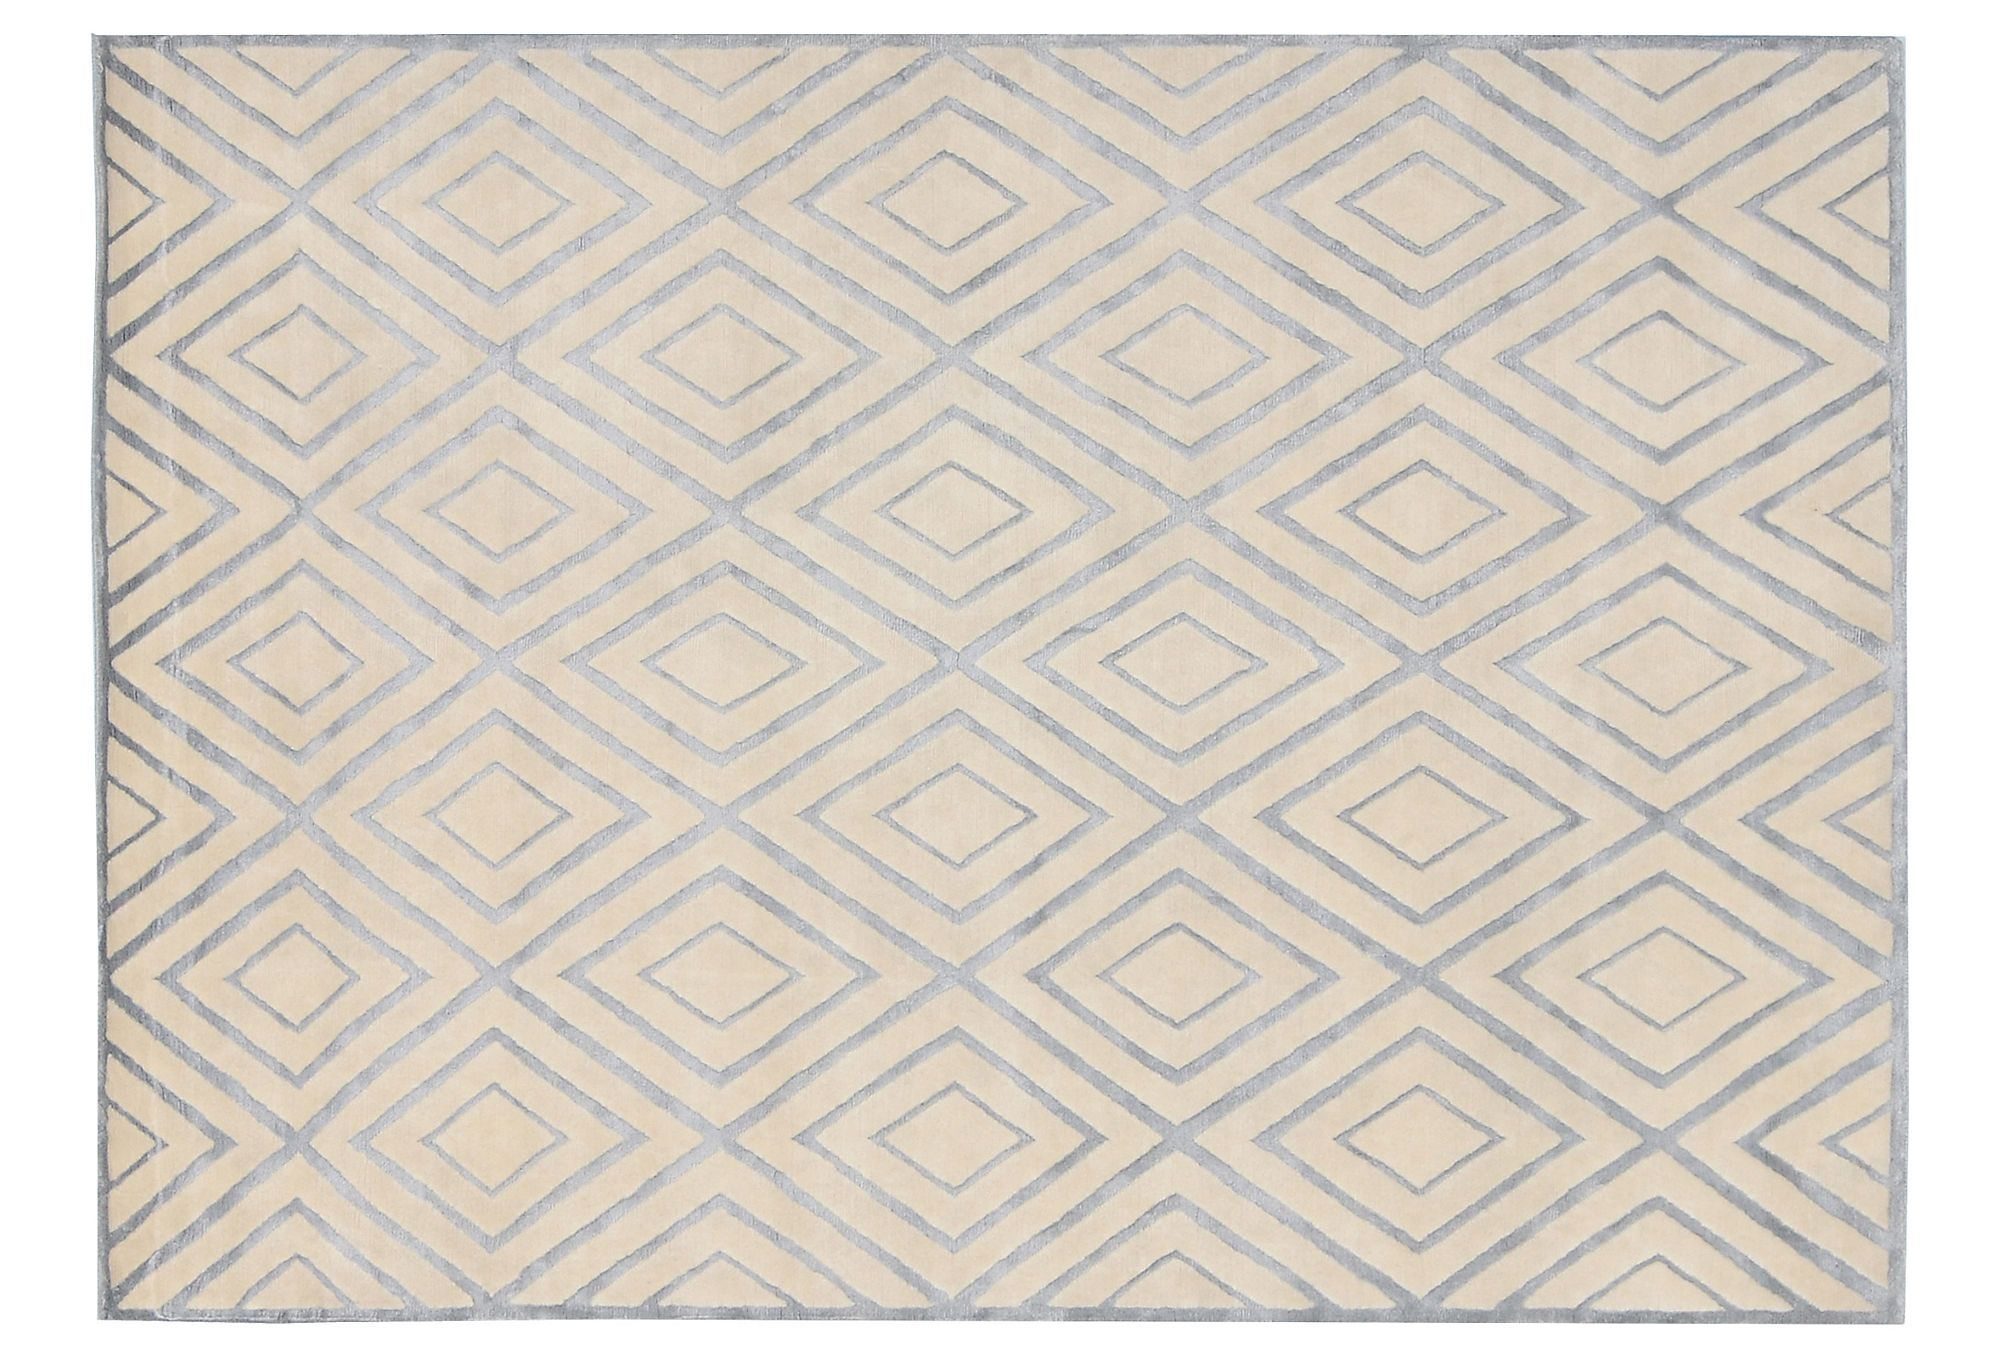 Beautiful David Hicks Ln Rug For The Dining Room